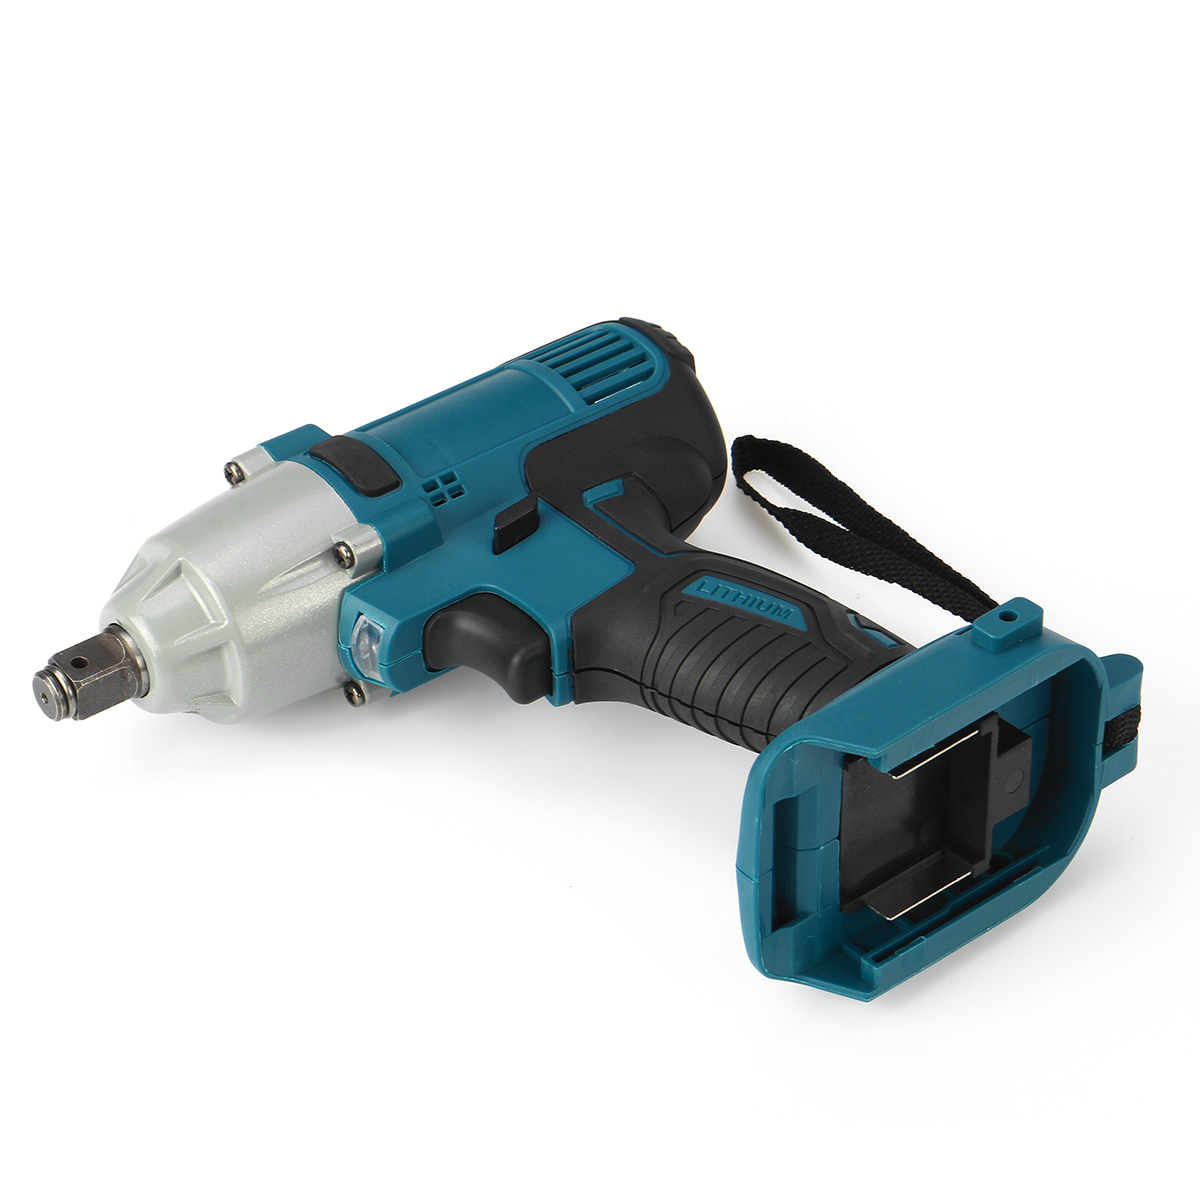 18V 480N.m. Li-Ion Cordless Impact Wrench Driver 1/2'' Brushed Electric Wrench Replacement for Makita Battery